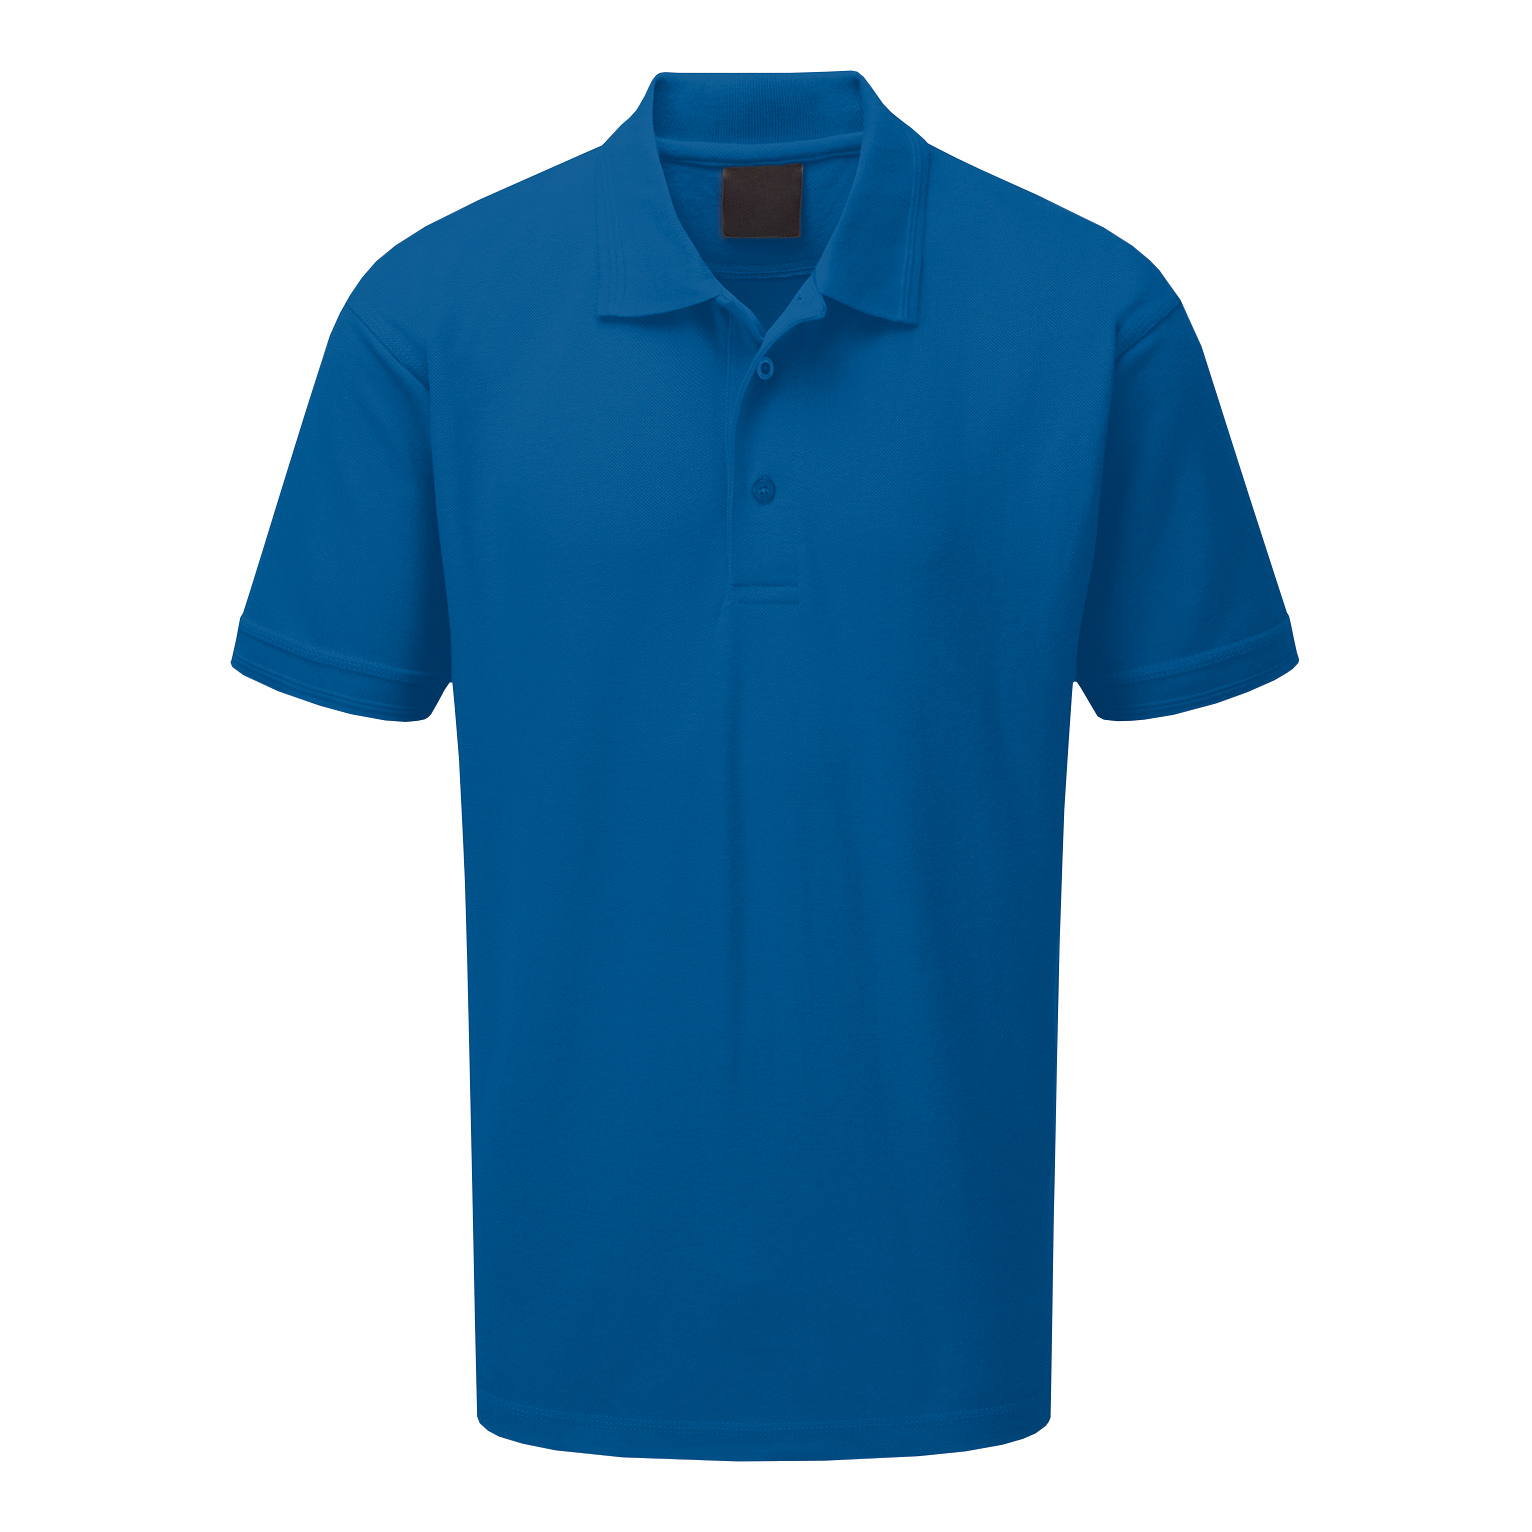 Premium Polo Shirt Triple Button 220gsm Polycotton 2XL Royal Blue Ref CLPKSRXXL *Approx 3 Day Leadtime*